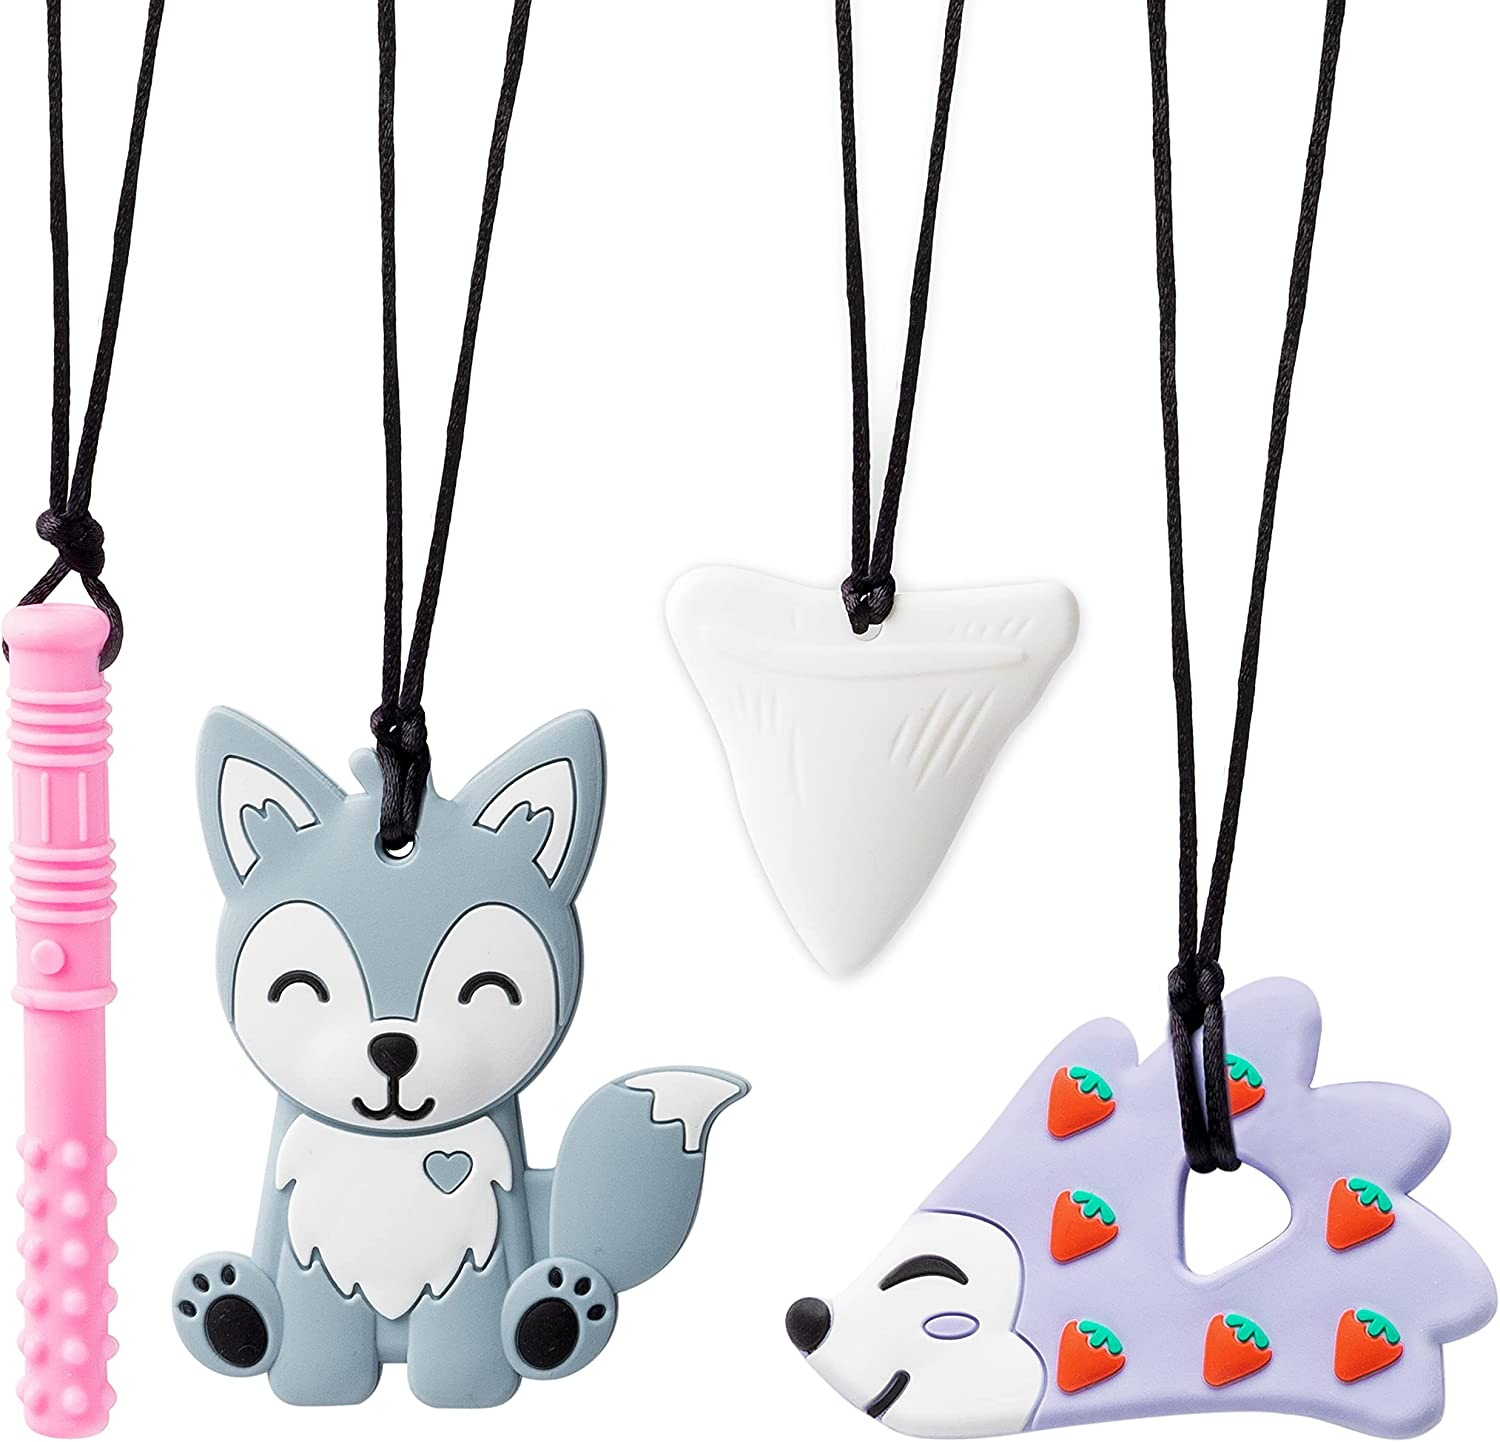 GROBRO7 4Pcs Sensory Chew Necklaces Shark Tooth Teethers Food Grade Silicone Teething Chewing Toy Hedgehog Husky Chewable Pendant Chewy Tubes for Infant Nibble Oral Motor Autism ADHD Boys Girls Kids